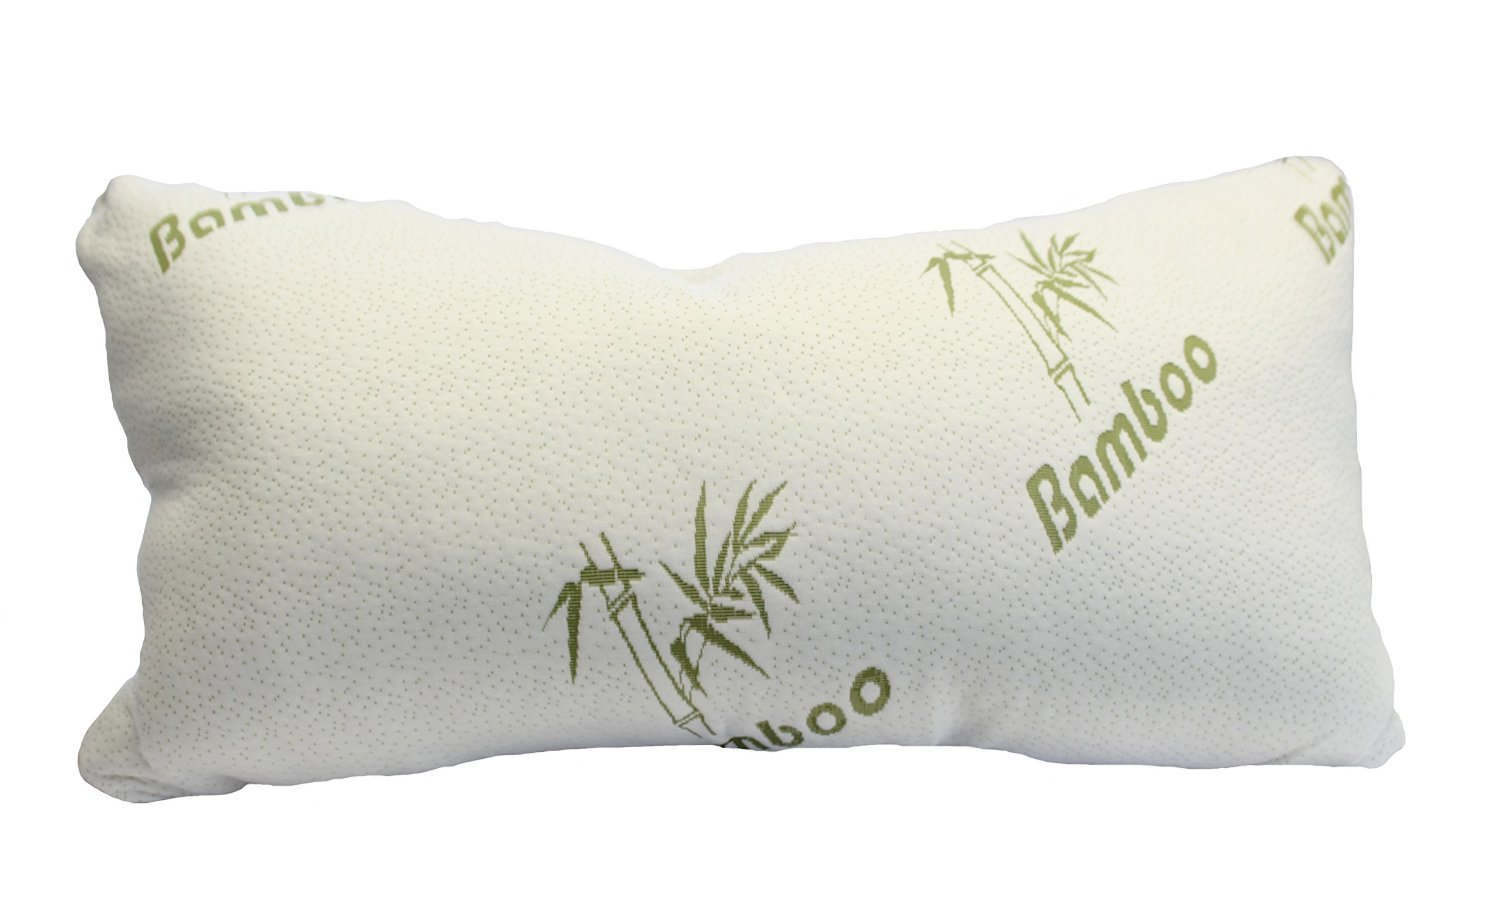 Original Bamboo King Size Pillow